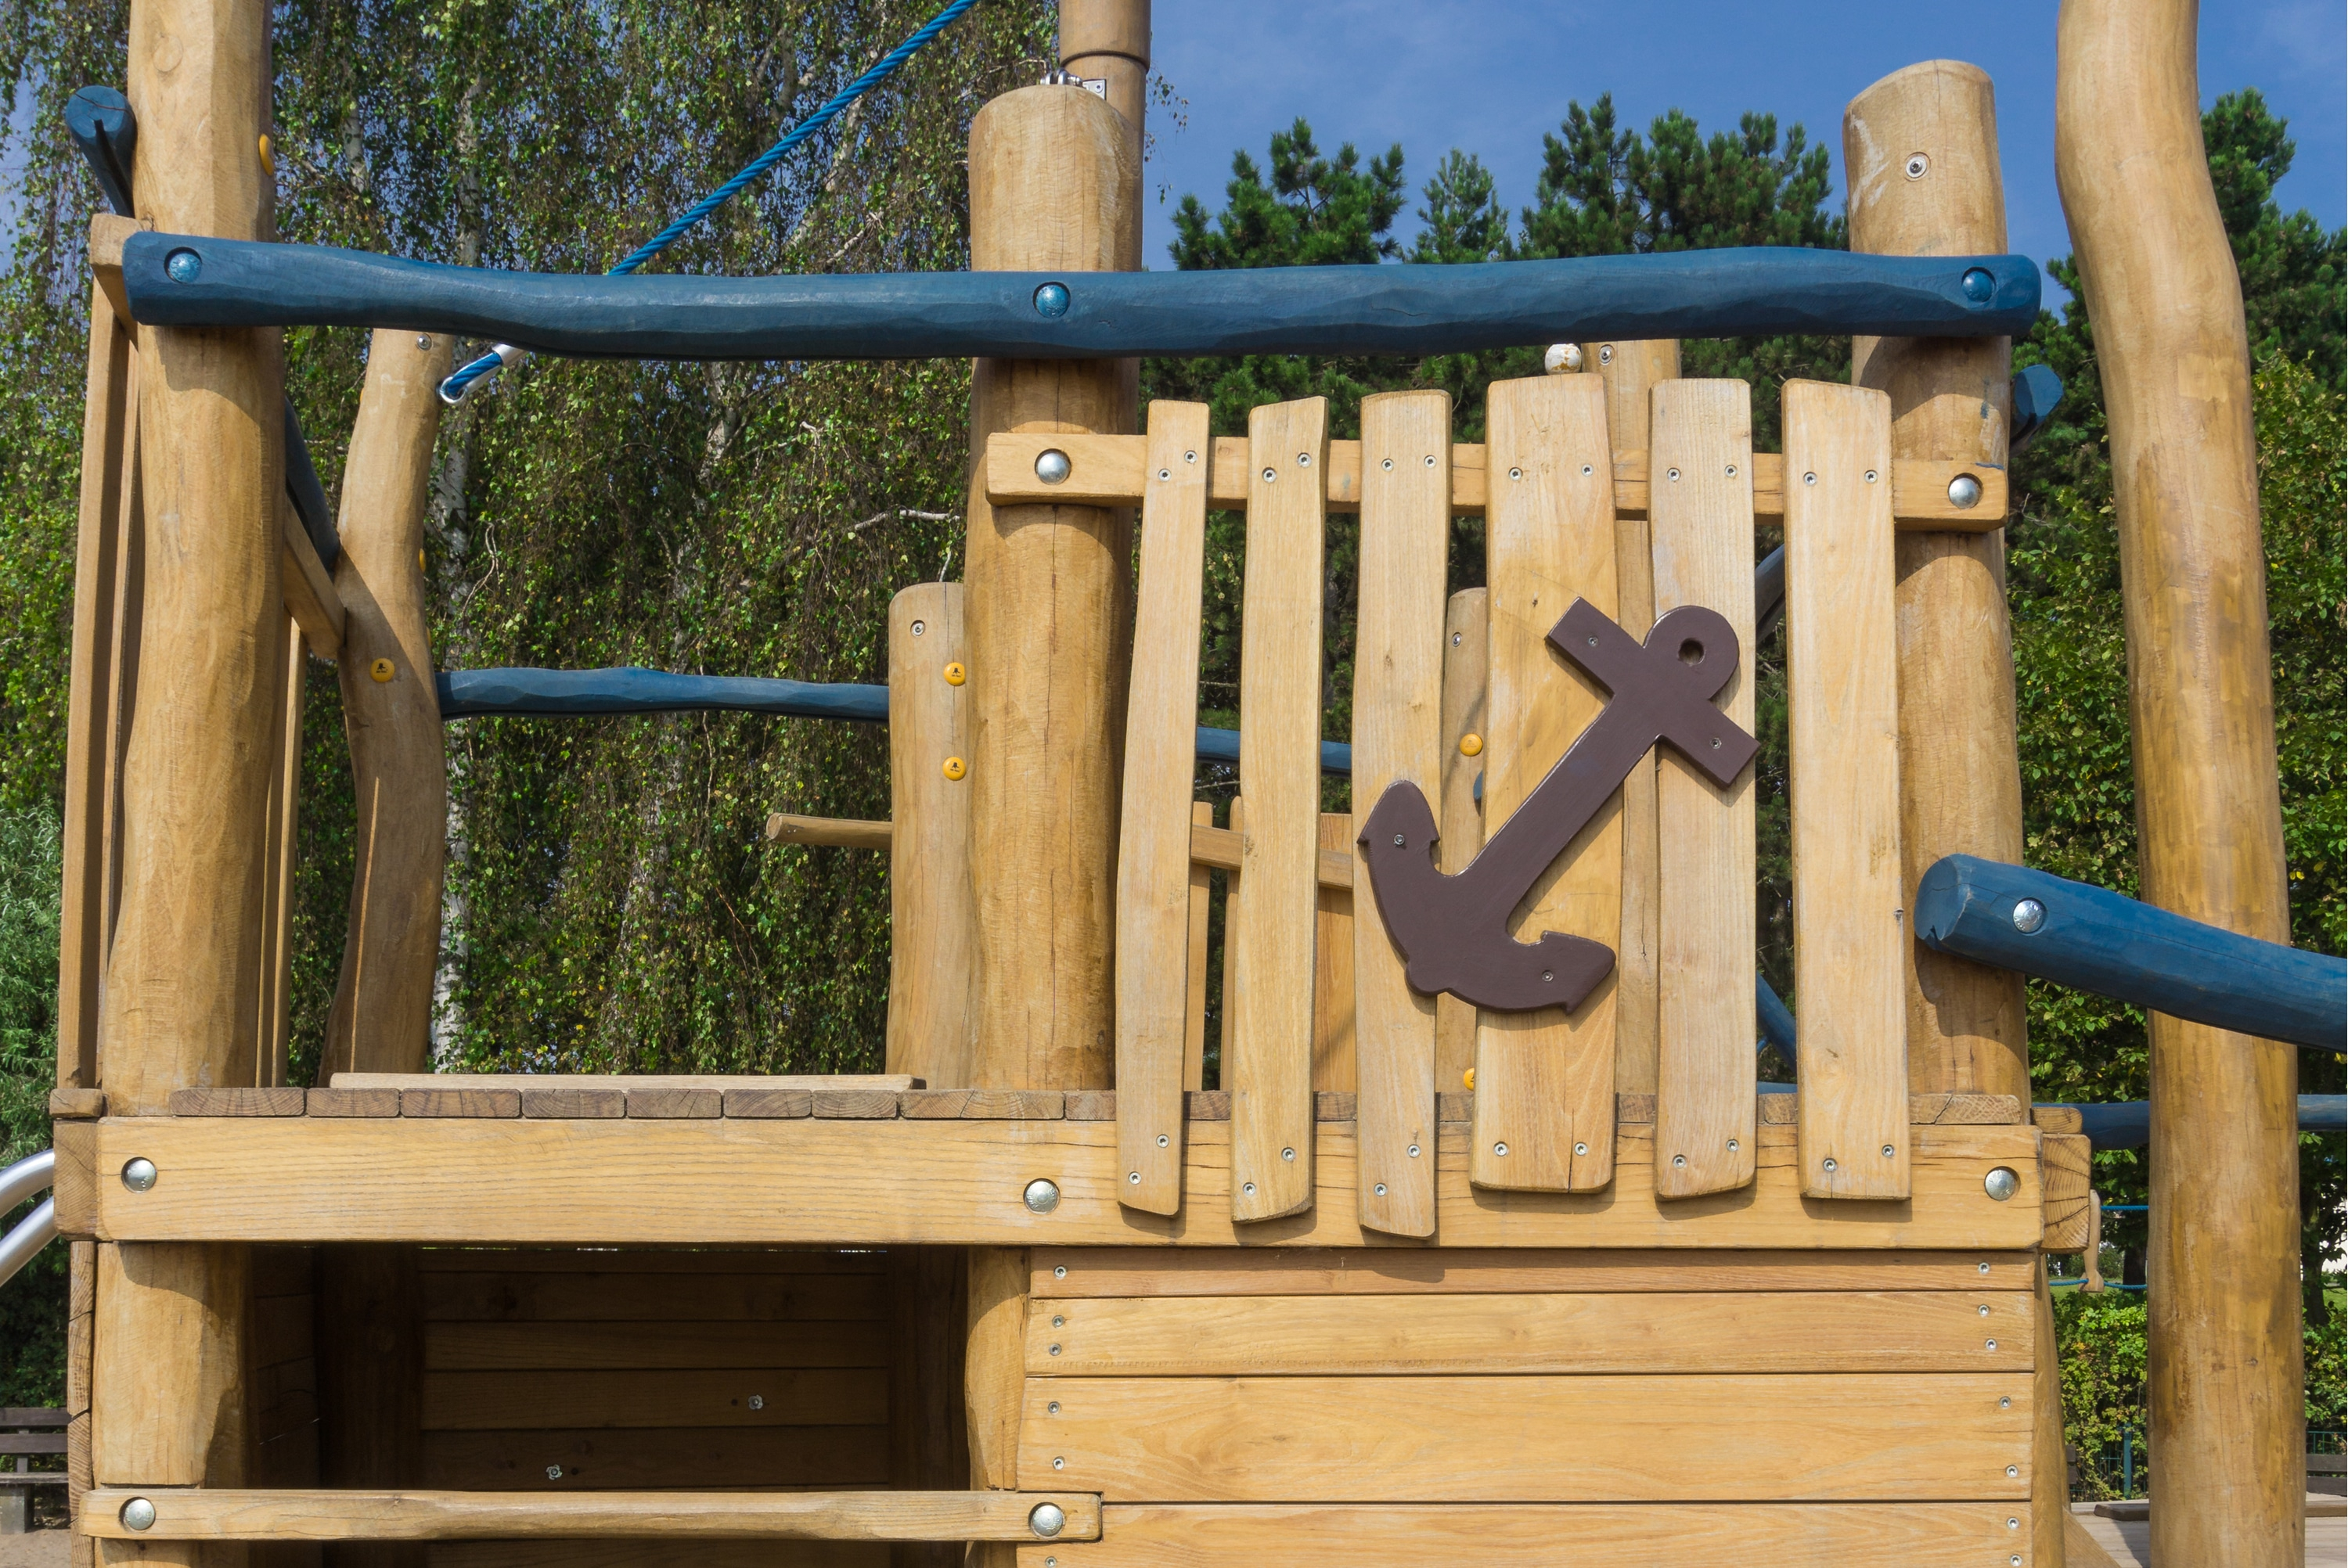 How To Build Outdoor Wooden Playground For Kids Equipment Design in 13 Clever Tricks of How to Upgrade Small Backyard Playground Ideas